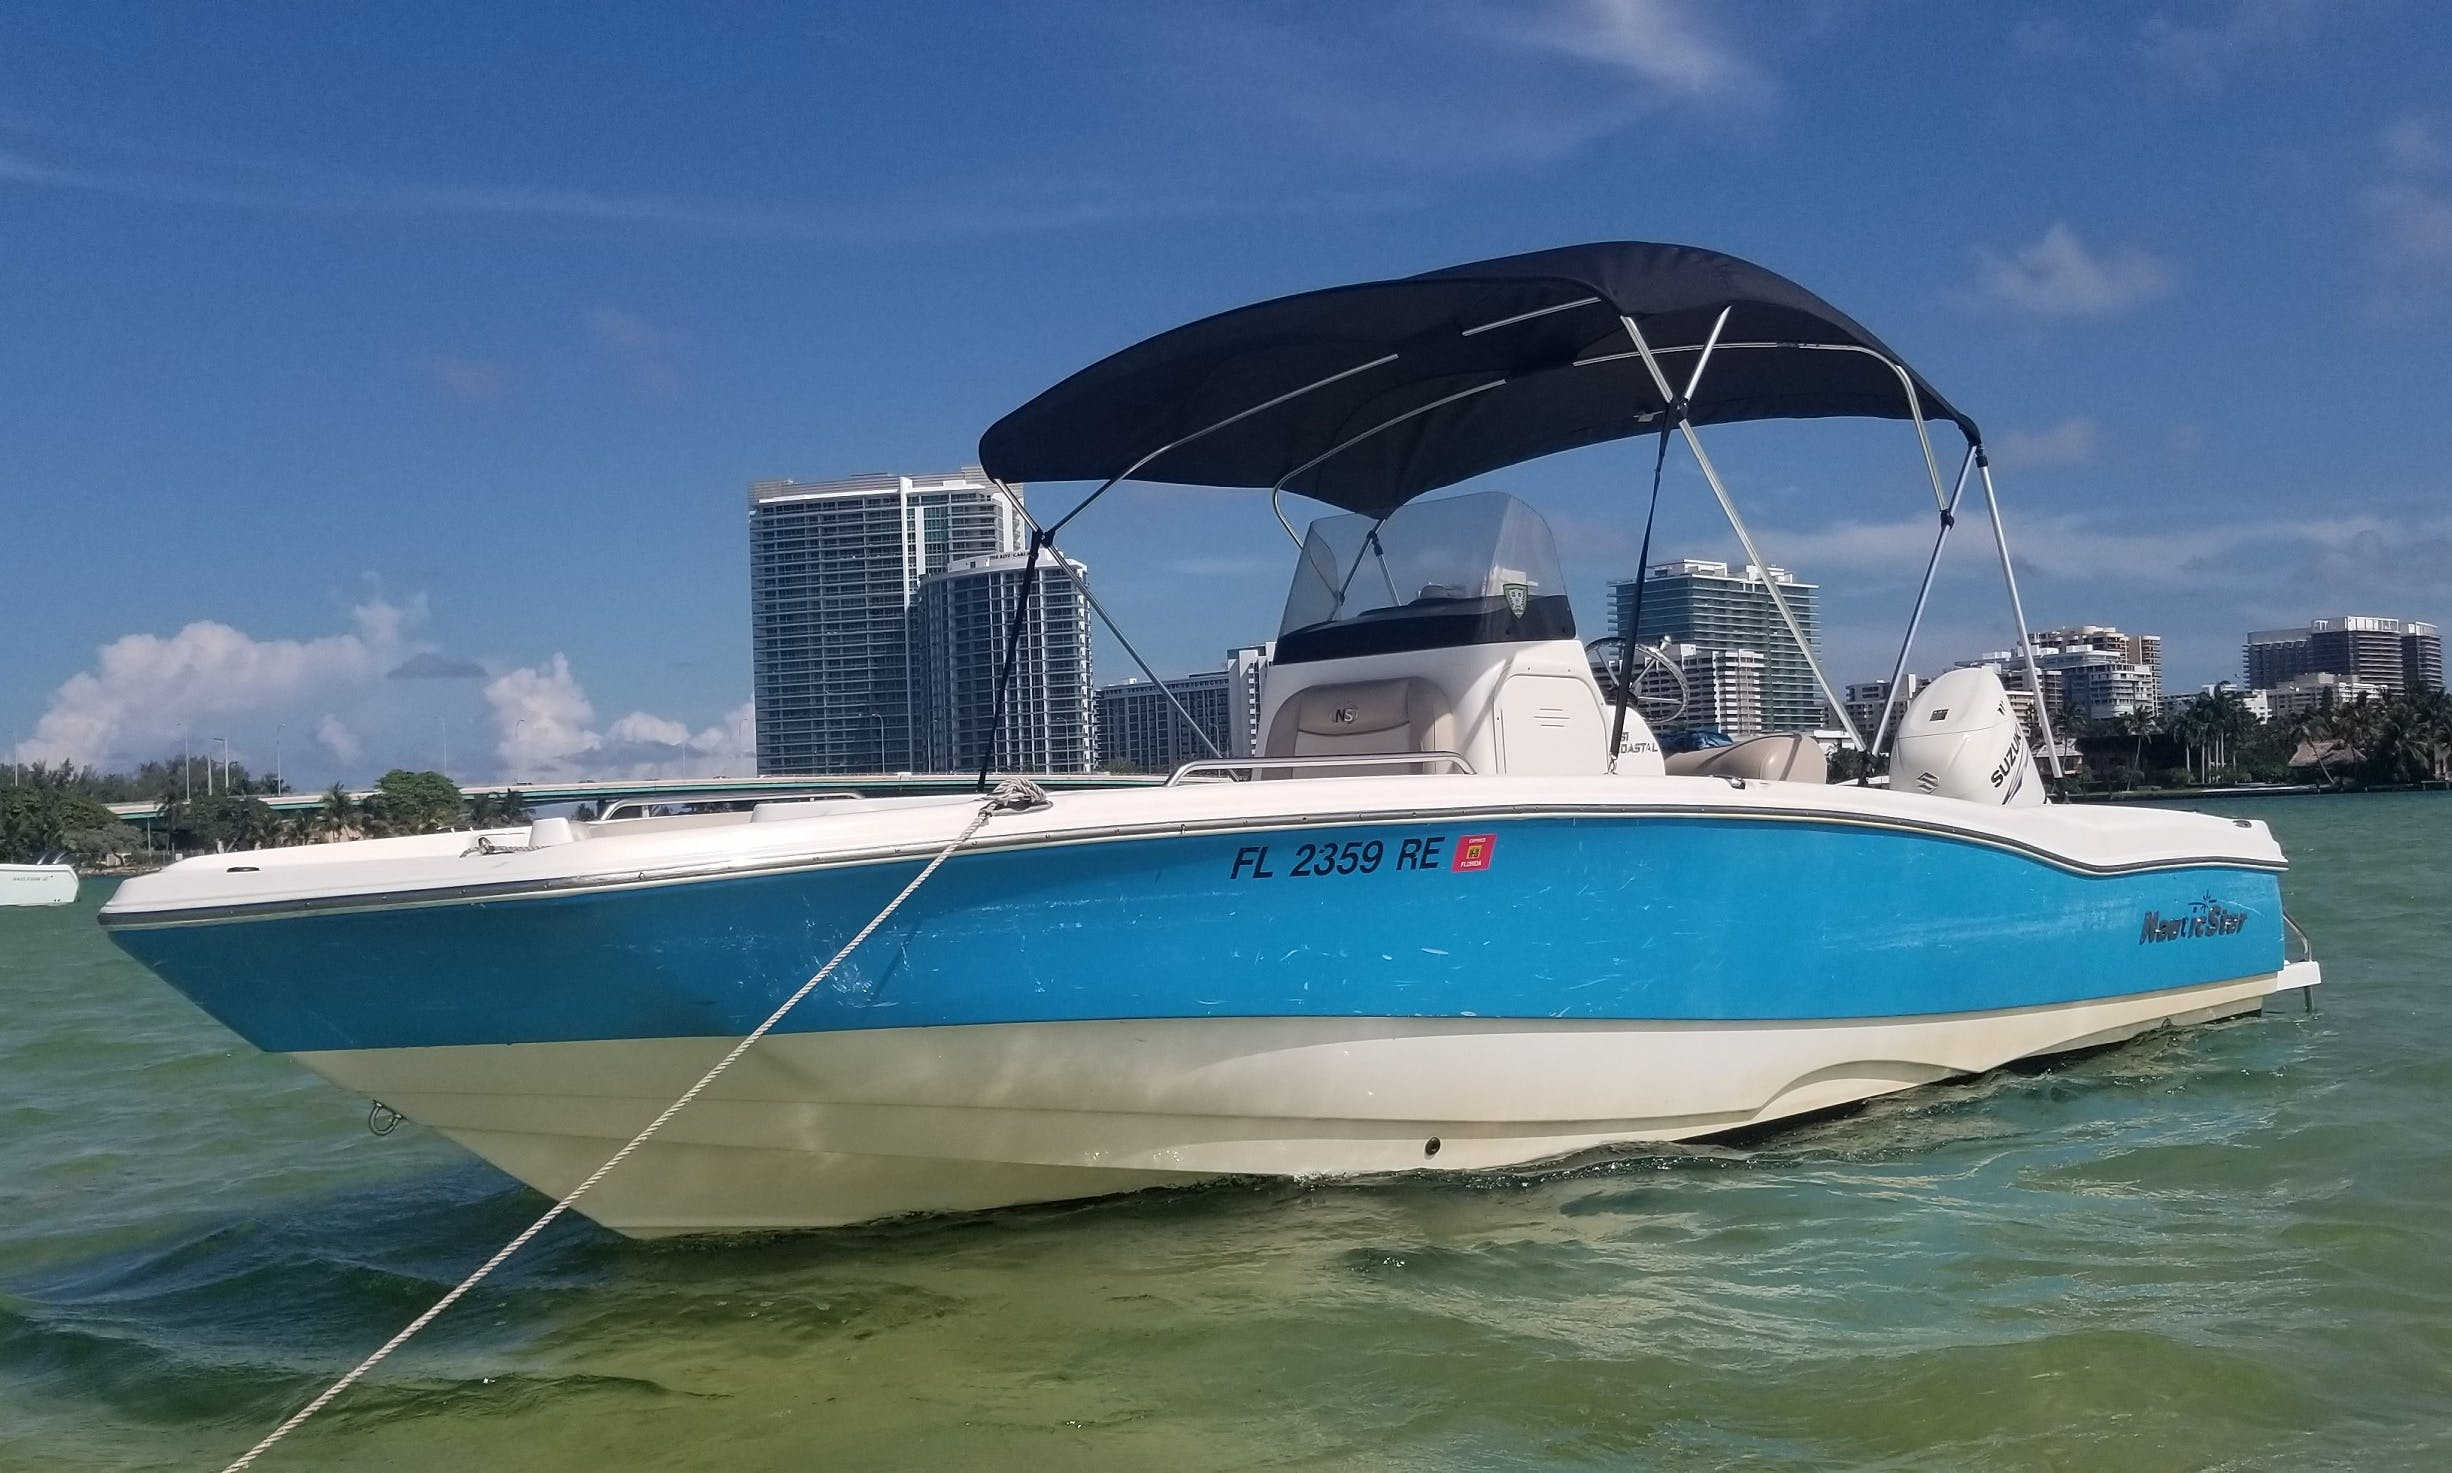 Deck Boat Rental for Up to 10 People in Sunny Isles Beach, Florida